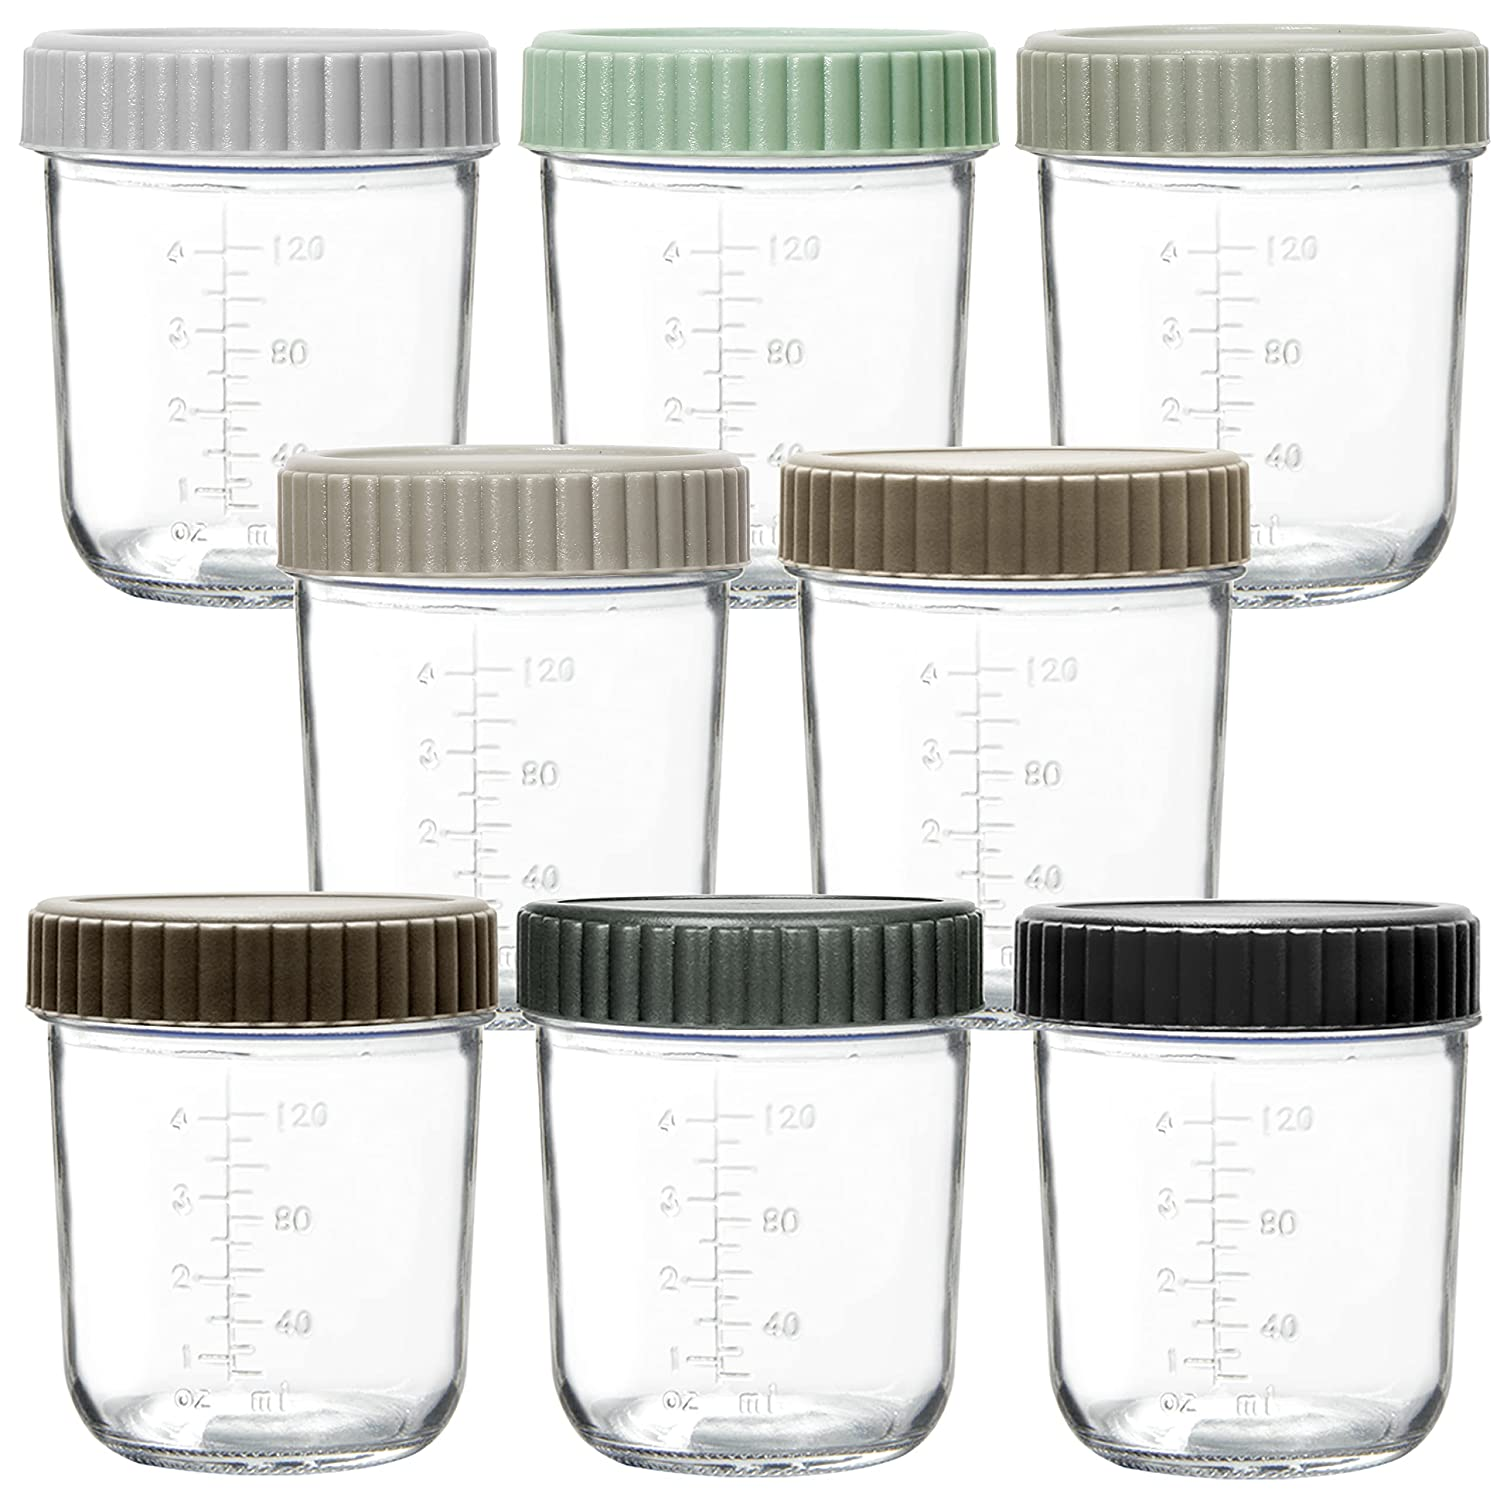 Youngever Glass Baby Food Storage, 6 Ounce Baby Food Glass Containers with Airtight Lids, Glass Jars with Lids, 8 Urban Colors